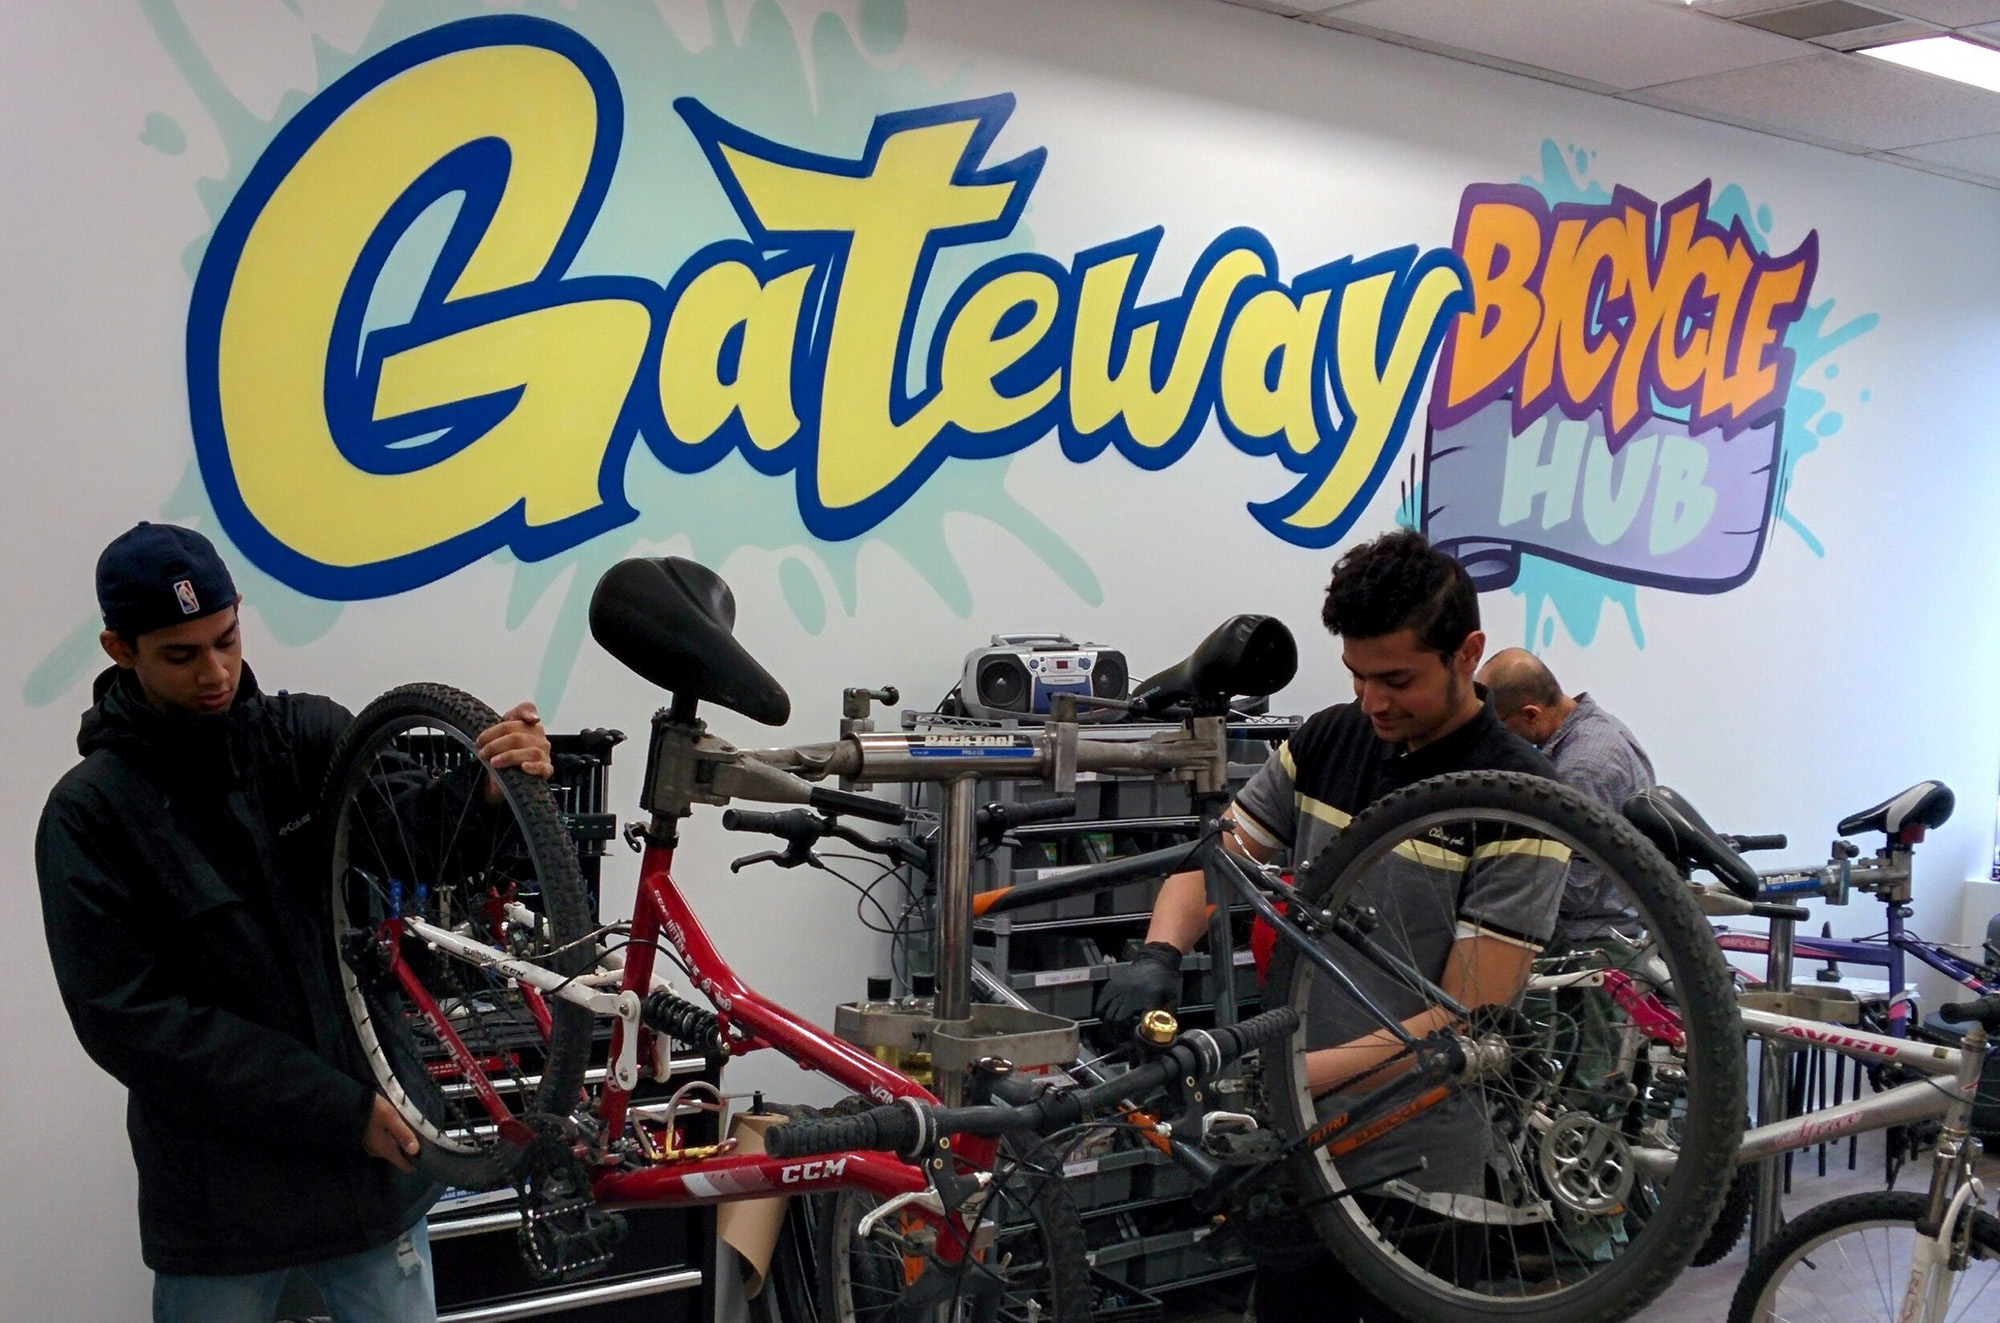 Two people work on bikes at the Gateway Bicycle Hub in Toronto.